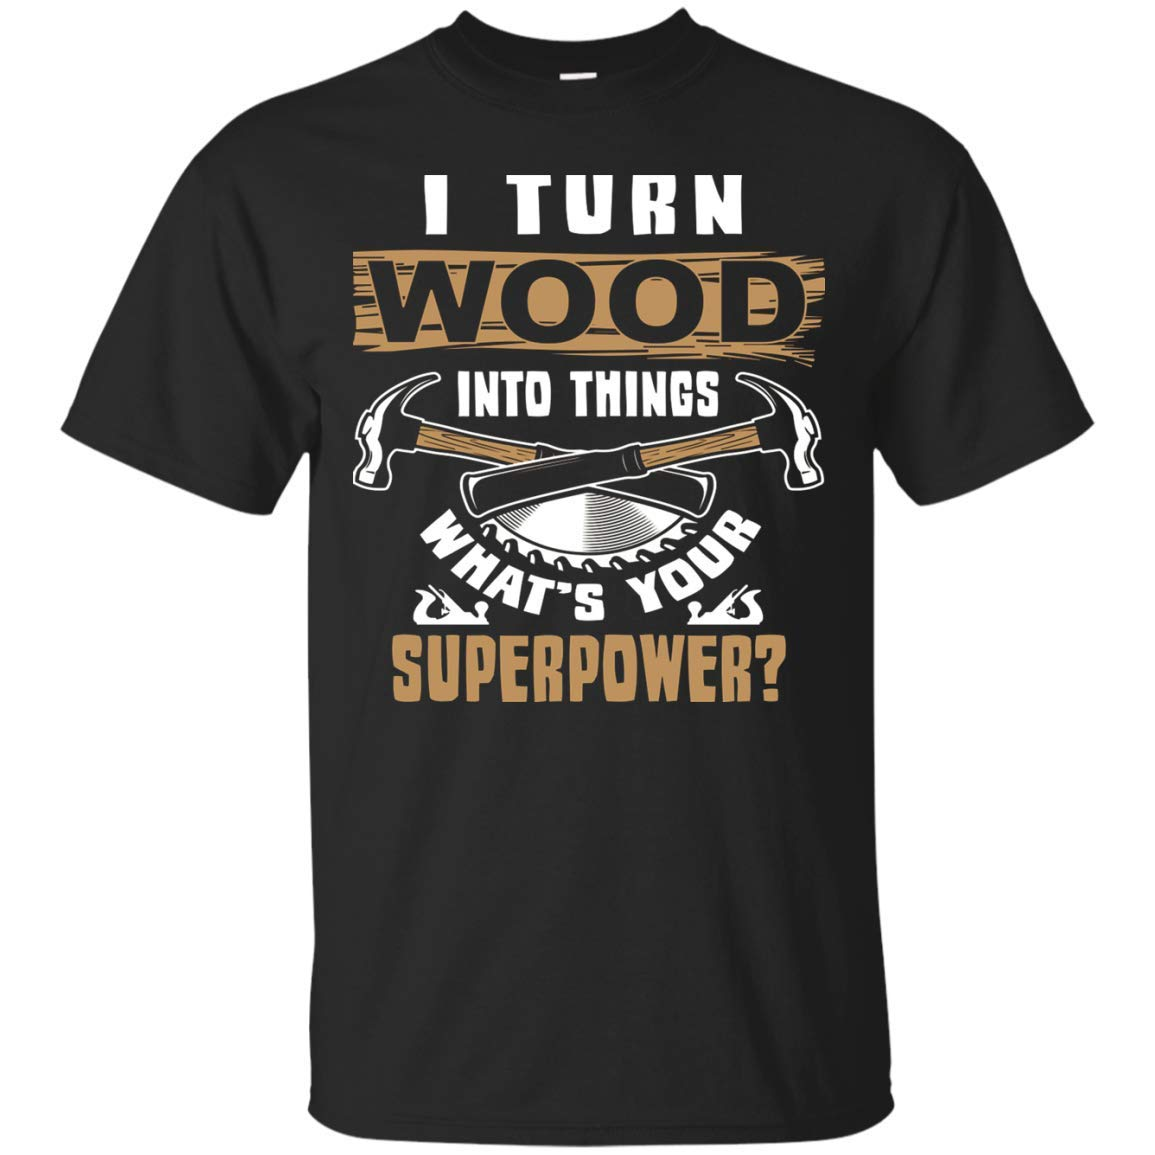 iSovo Carpenter Unisex T-Shirt I Turn Wood Into Things 1 Labor Day Gift Jobs